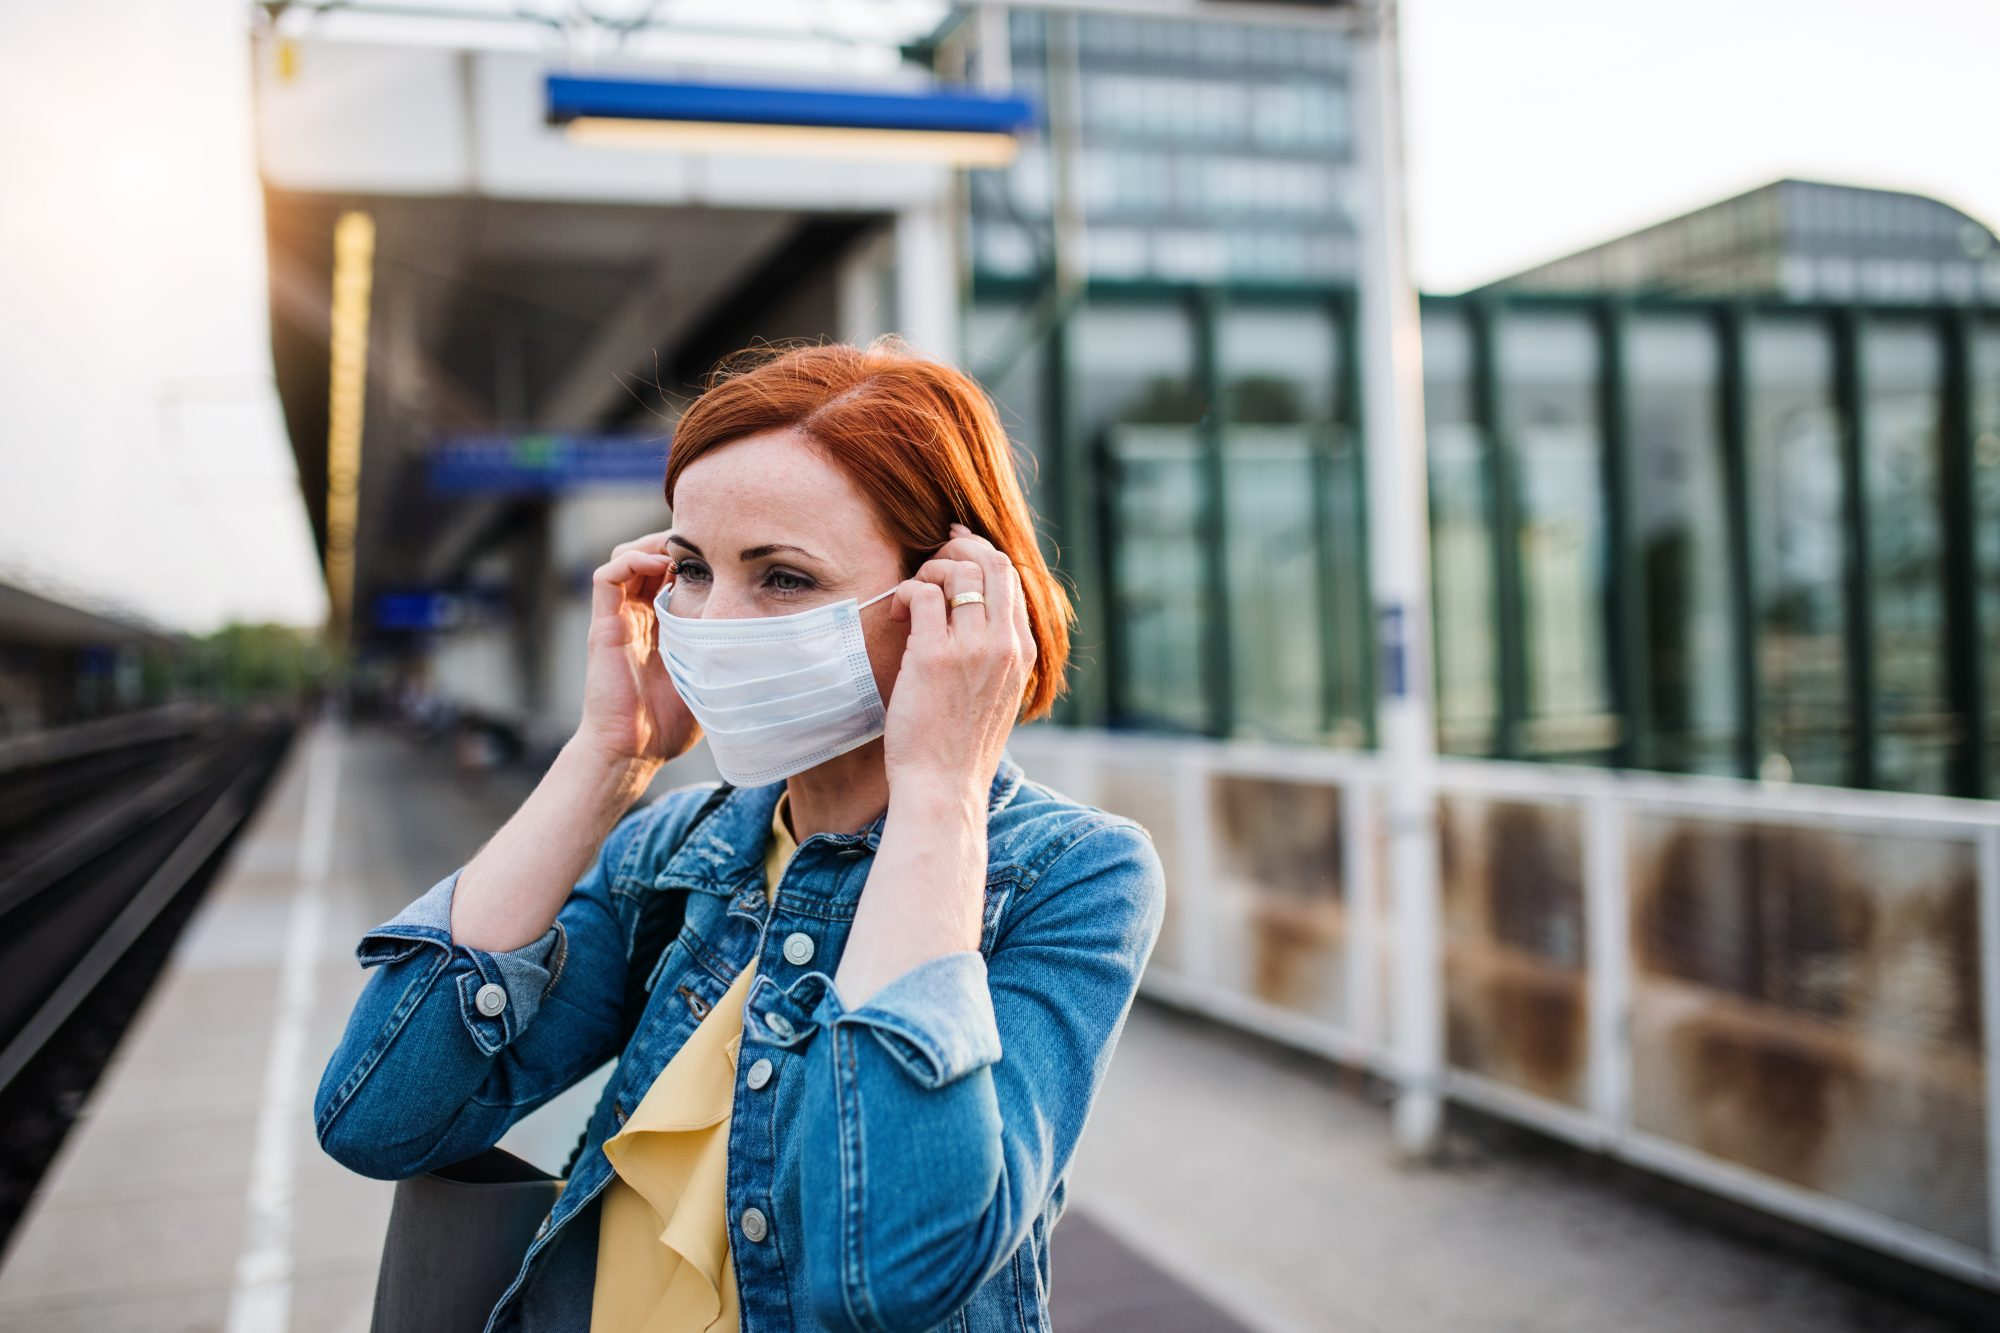 woman wearing fask mask waiting for a train